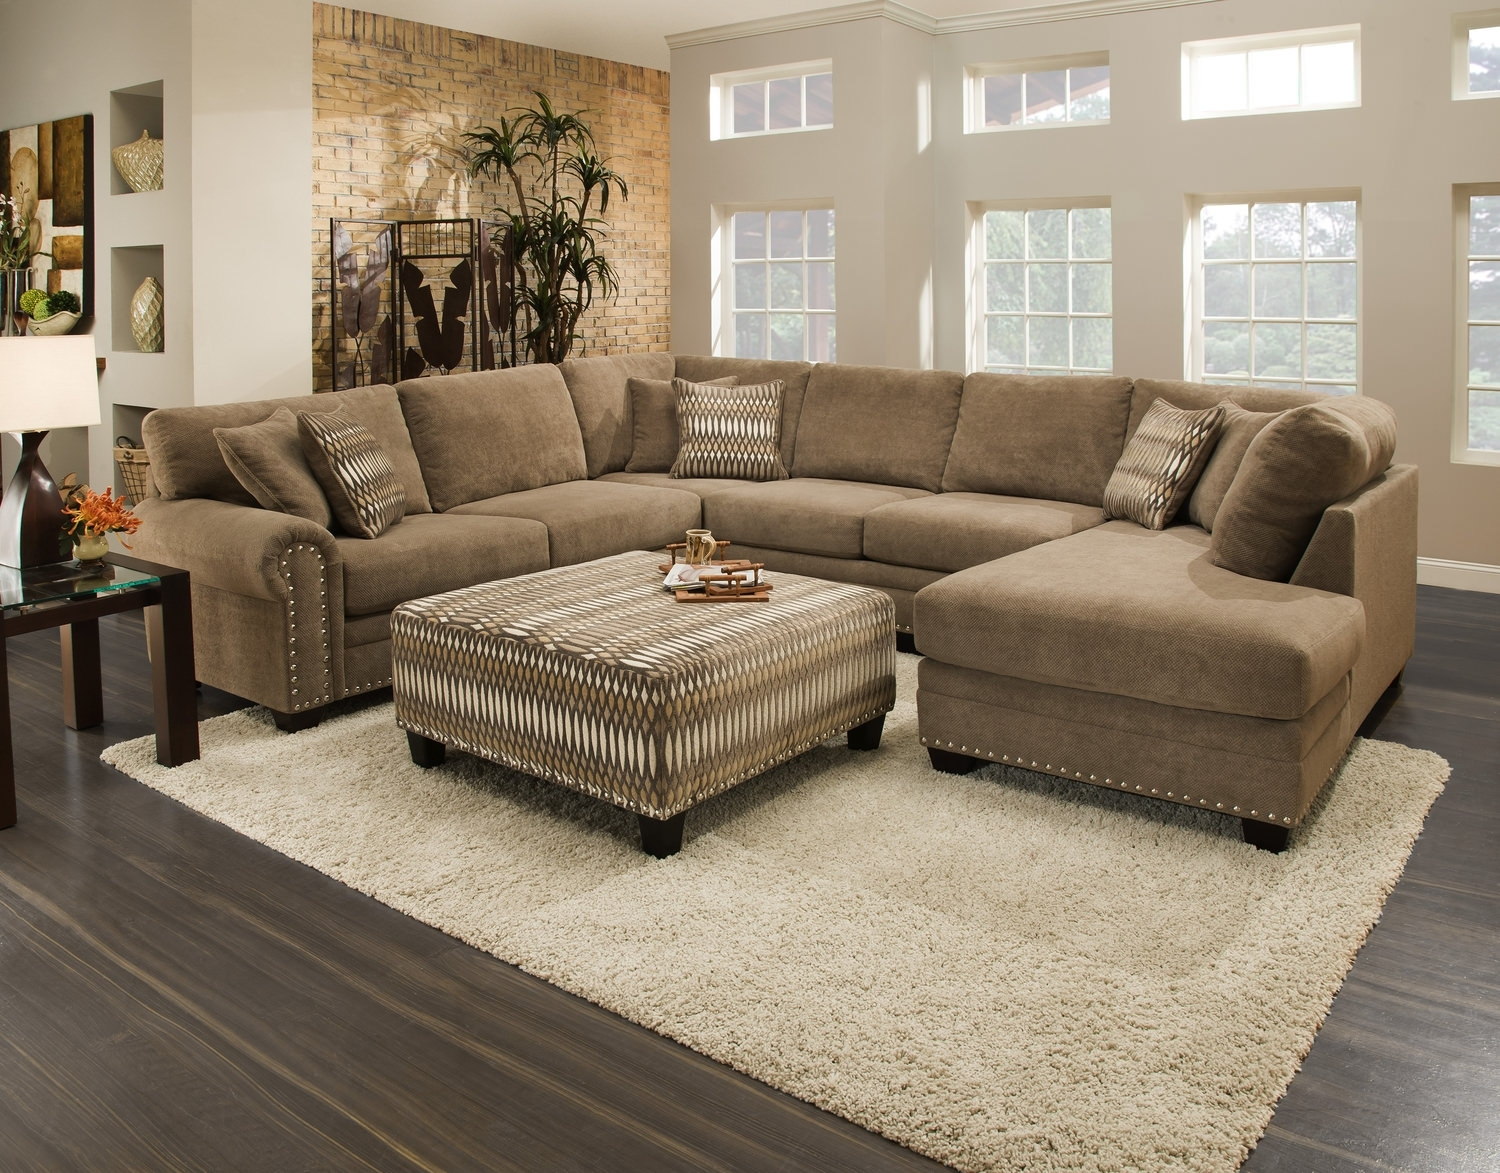 Sectional Sofas Mn – Home And Textiles Regarding Mn Sectional Sofas (View 9 of 10)